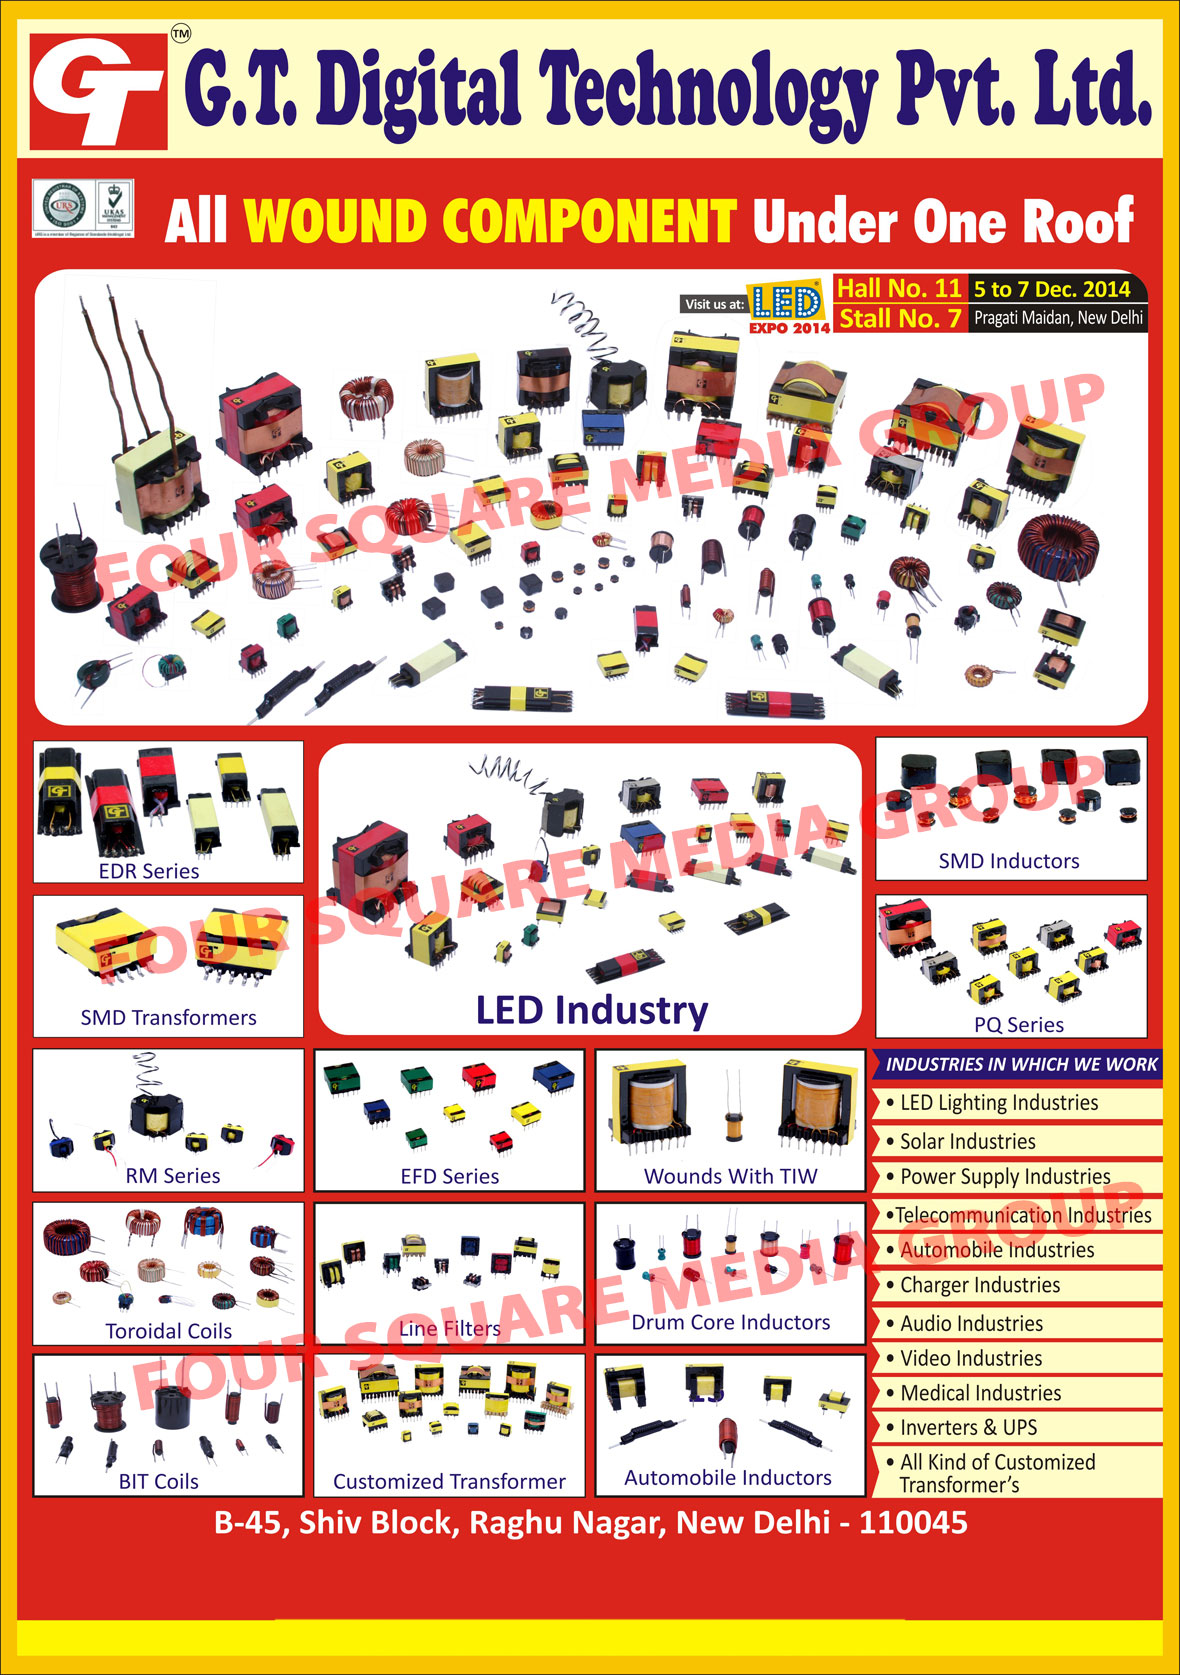 Wound Components EDR Series, SMD Transformers, Wound Components RM Series, Toroidal Coils, BIT Coils, Wound Components EFD Series, Line Filters, Customized Transformers, Drum Core Inductors, Automotive Inductors, SMD Inductors, Wound Components PQ Series,Led Lighting Ferrite Transformers, Solar Lighting Ferrite Transformers, CFL Ferrite Transformers, Ballast Ferrite Transformers, Inductors, Transformer